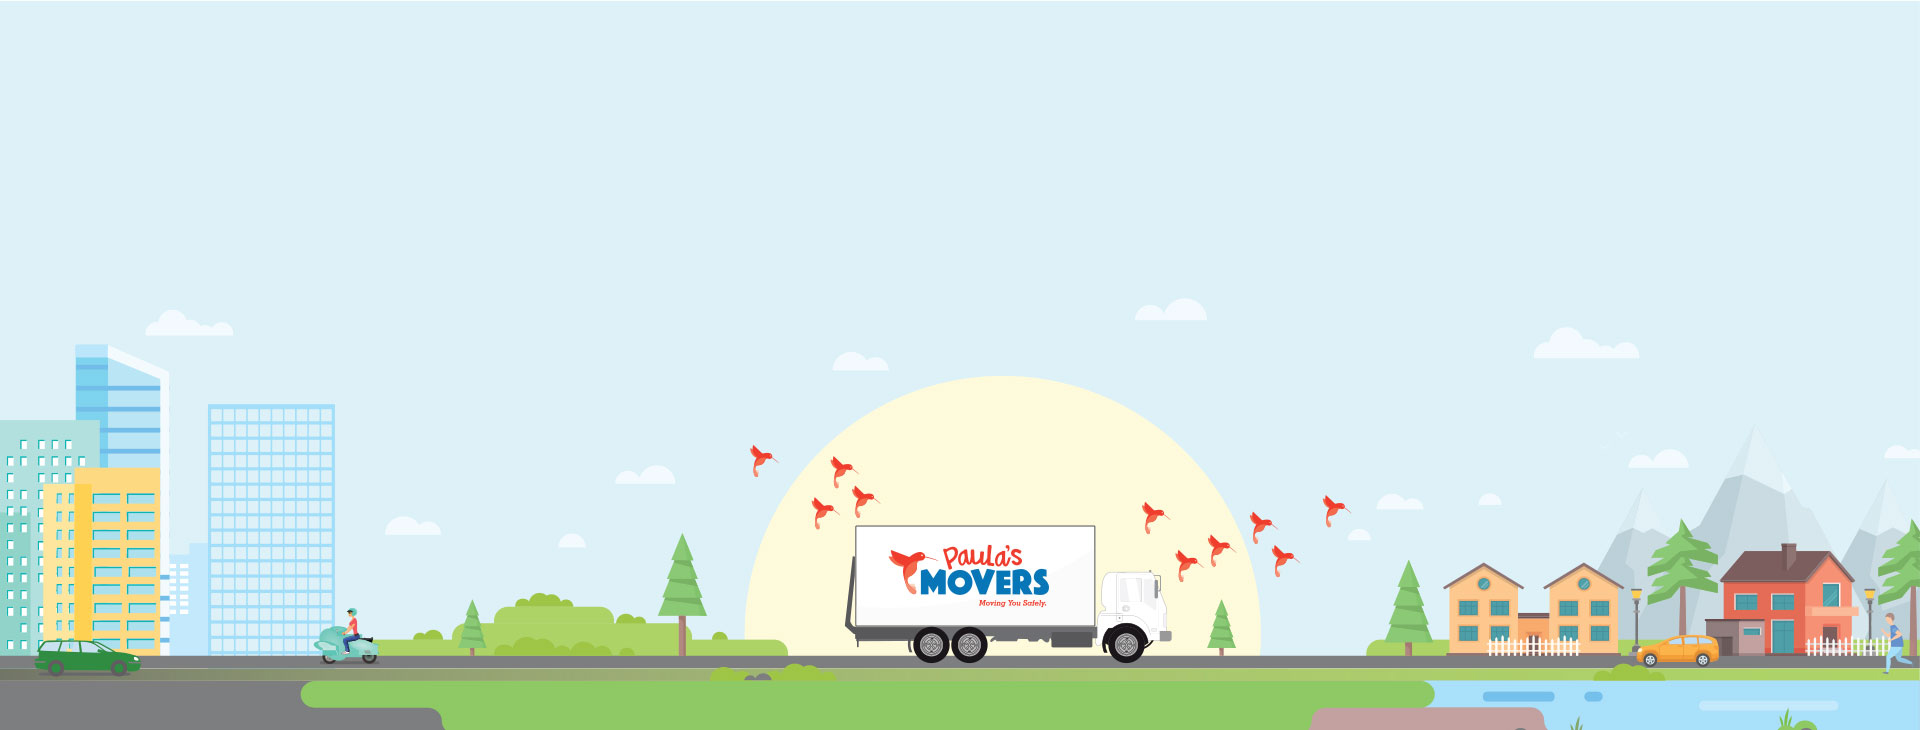 Paula's Movers Moving Another Happy Customer To Their New Home.